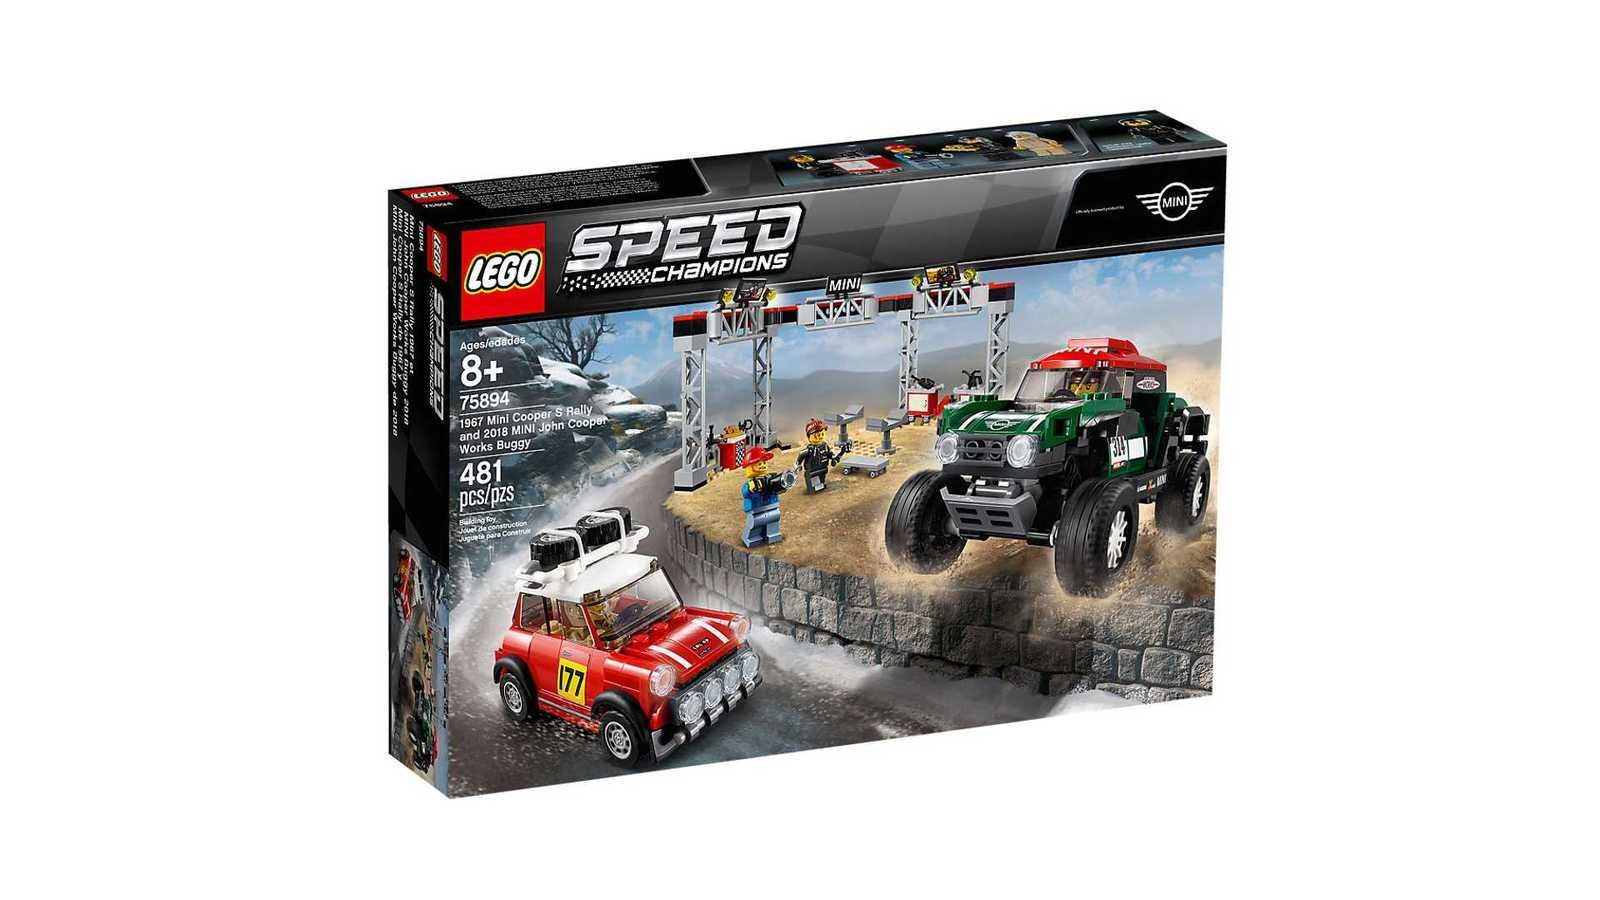 Bad Set Champ Lego 39s 2019 Speed Champions Lineup Is Loaded With Pony